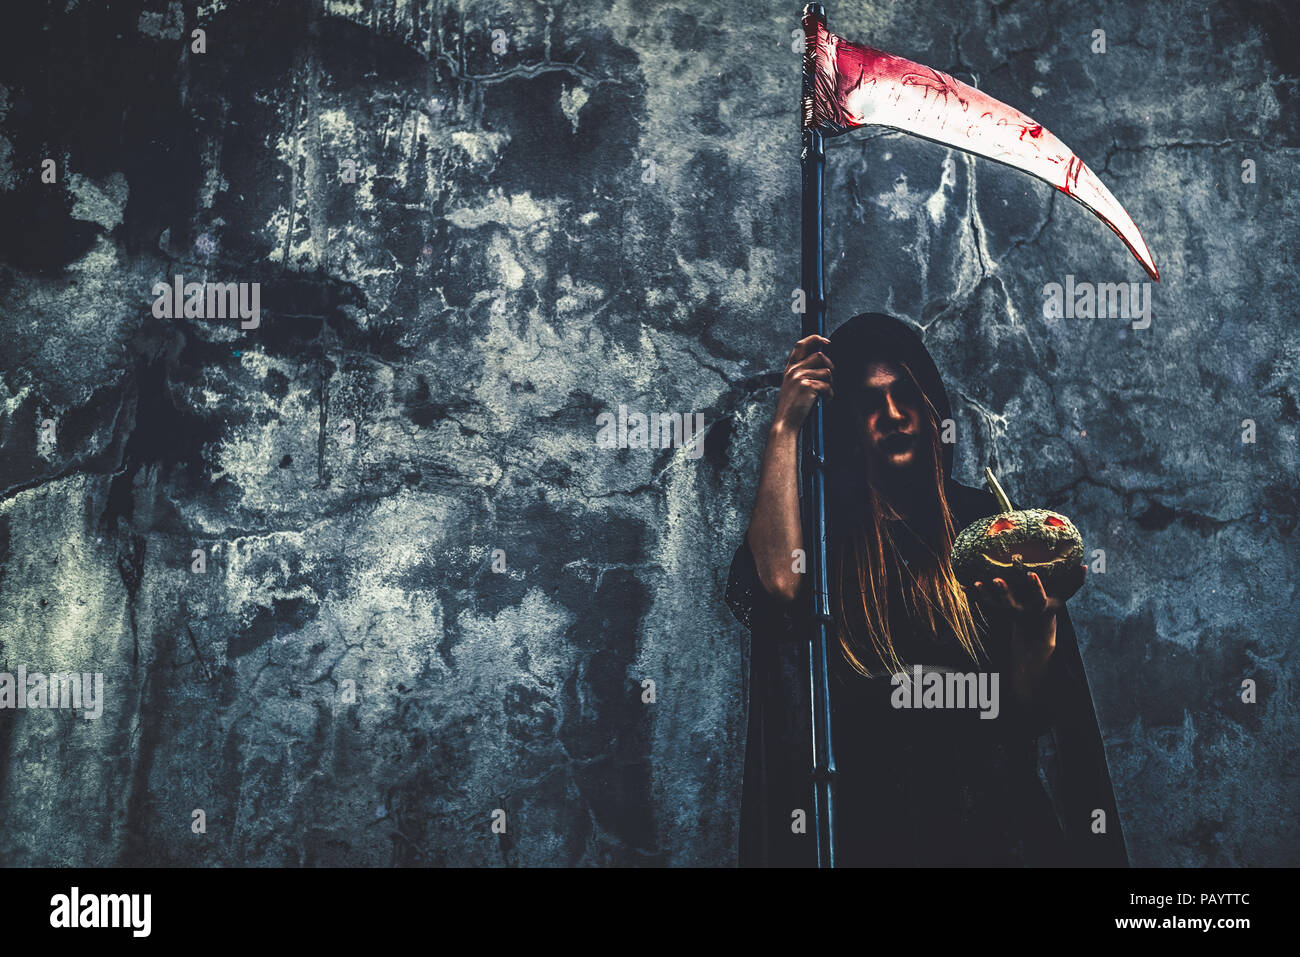 Demon witch with reaper on grunge wall background. Halloween and Religious concept. Demon angel and Satan theme. - Stock Image